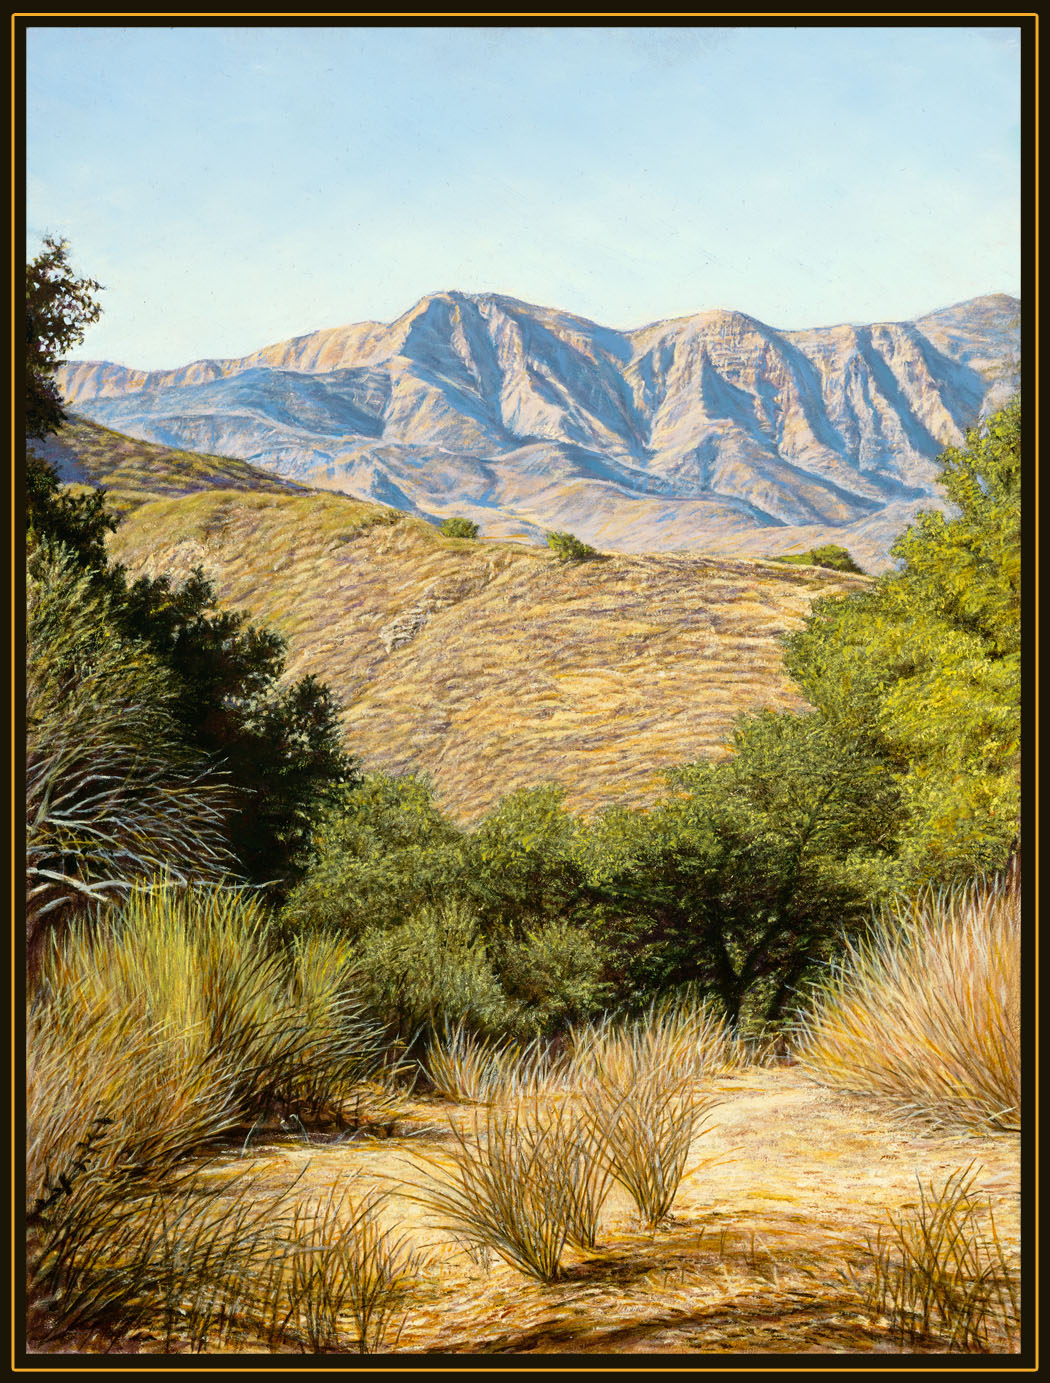 """Path to the Mountains"" by Dennis Curry  Begun on location, this painting depicts the San Rafael mountains from the area around Lake Cachuma California."